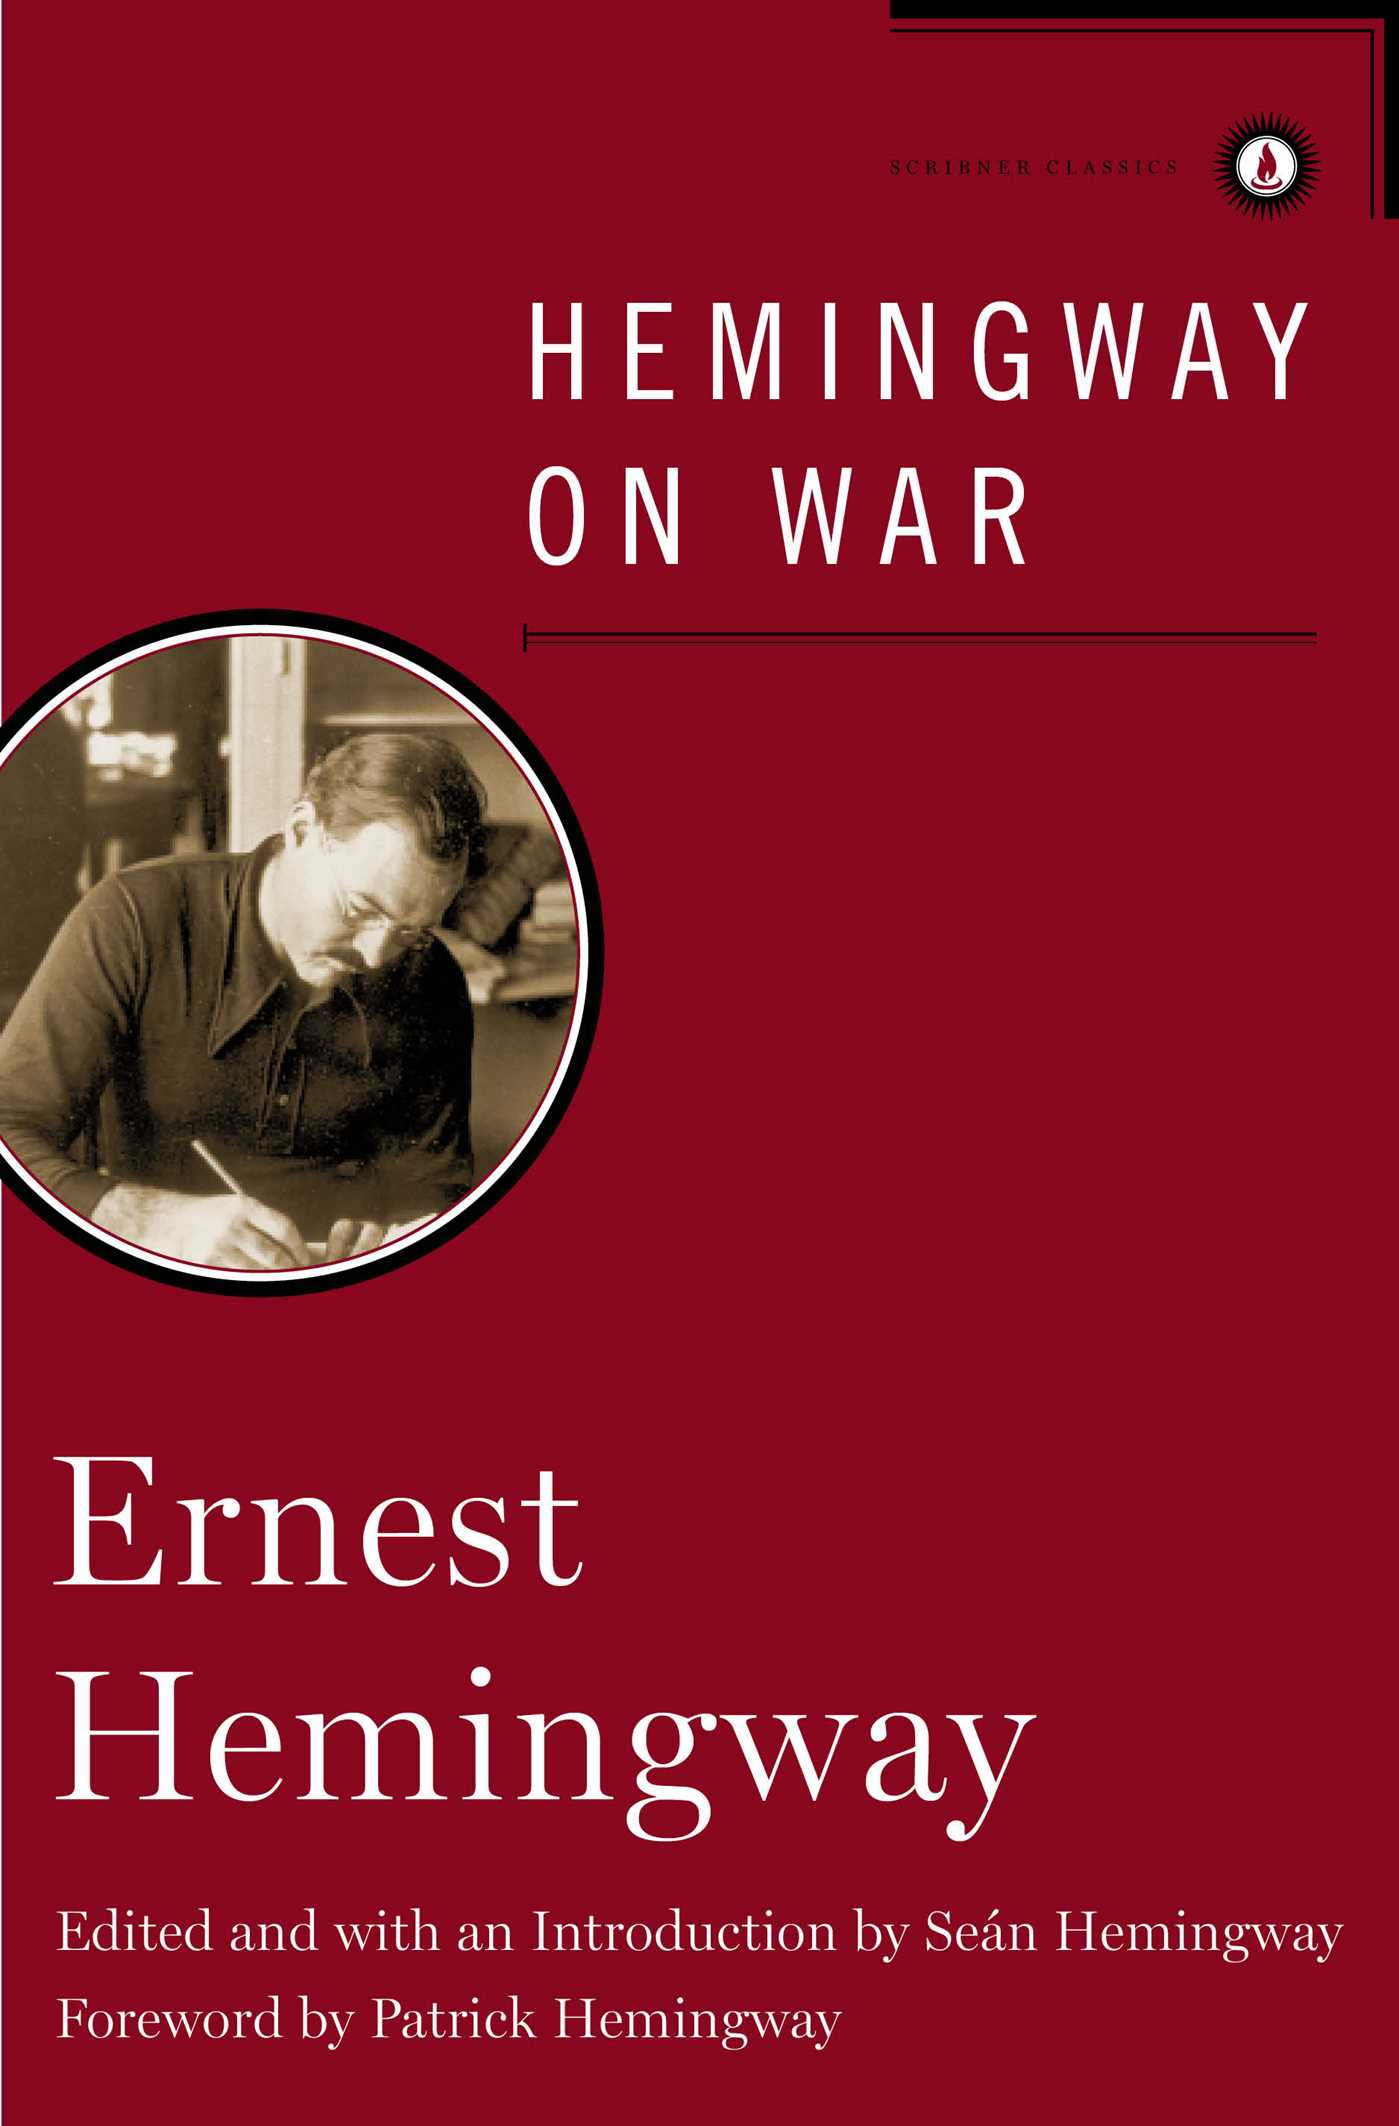 Hemingway-on-war-9781476716046_hr